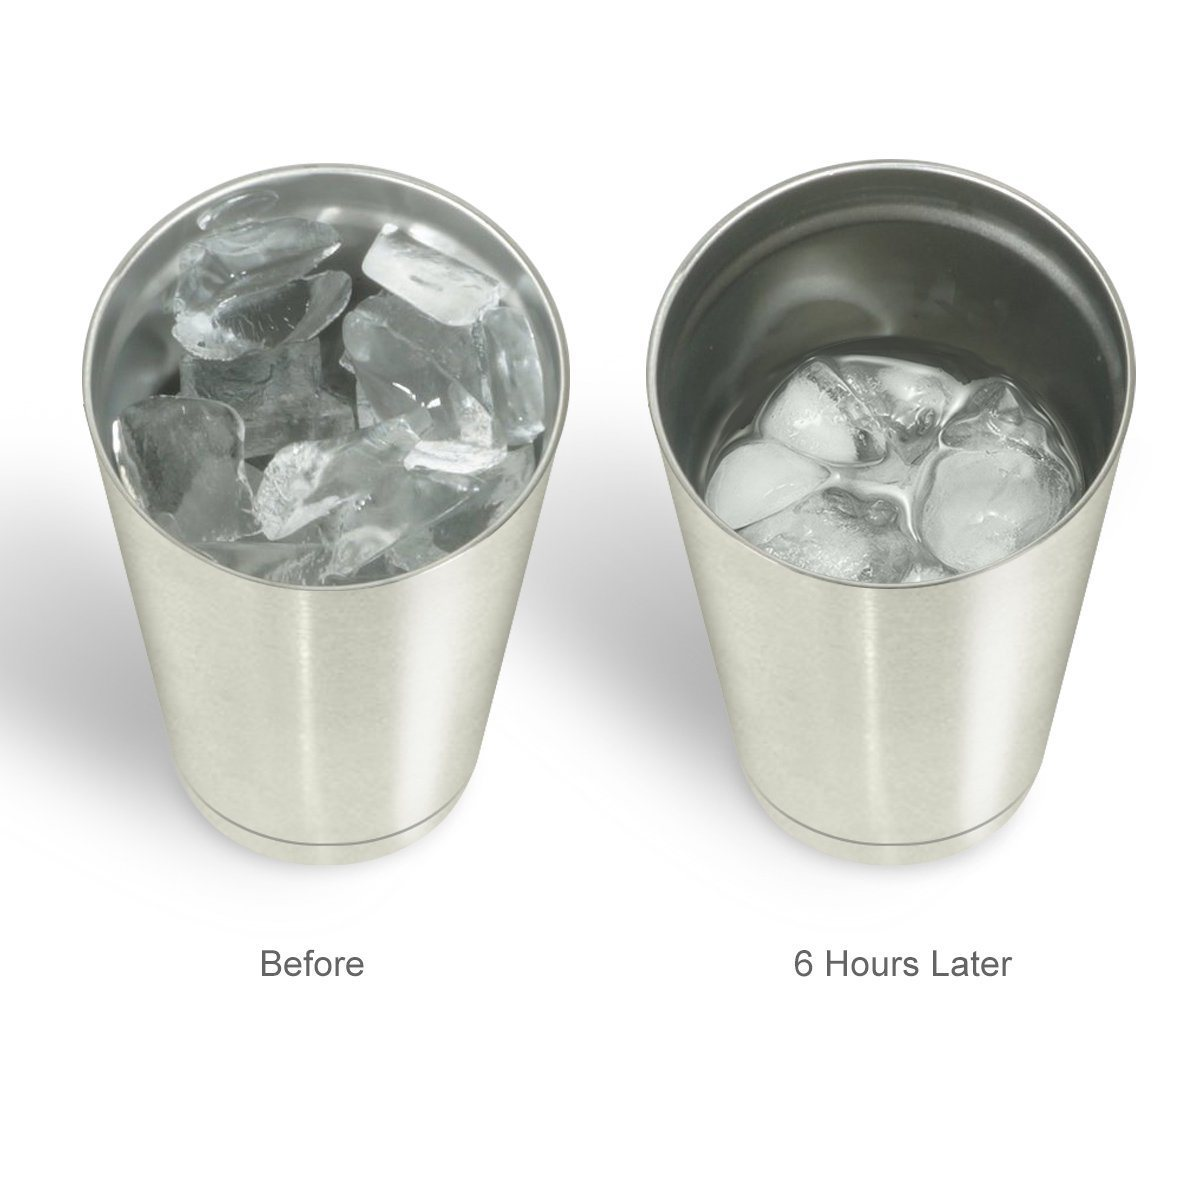 Stainless Steel Tumbler, Double Wall Vacuum Insulated Tumbler Cup with Anti-Splash Lid, Keeps Cold or Hot, 20 Oz